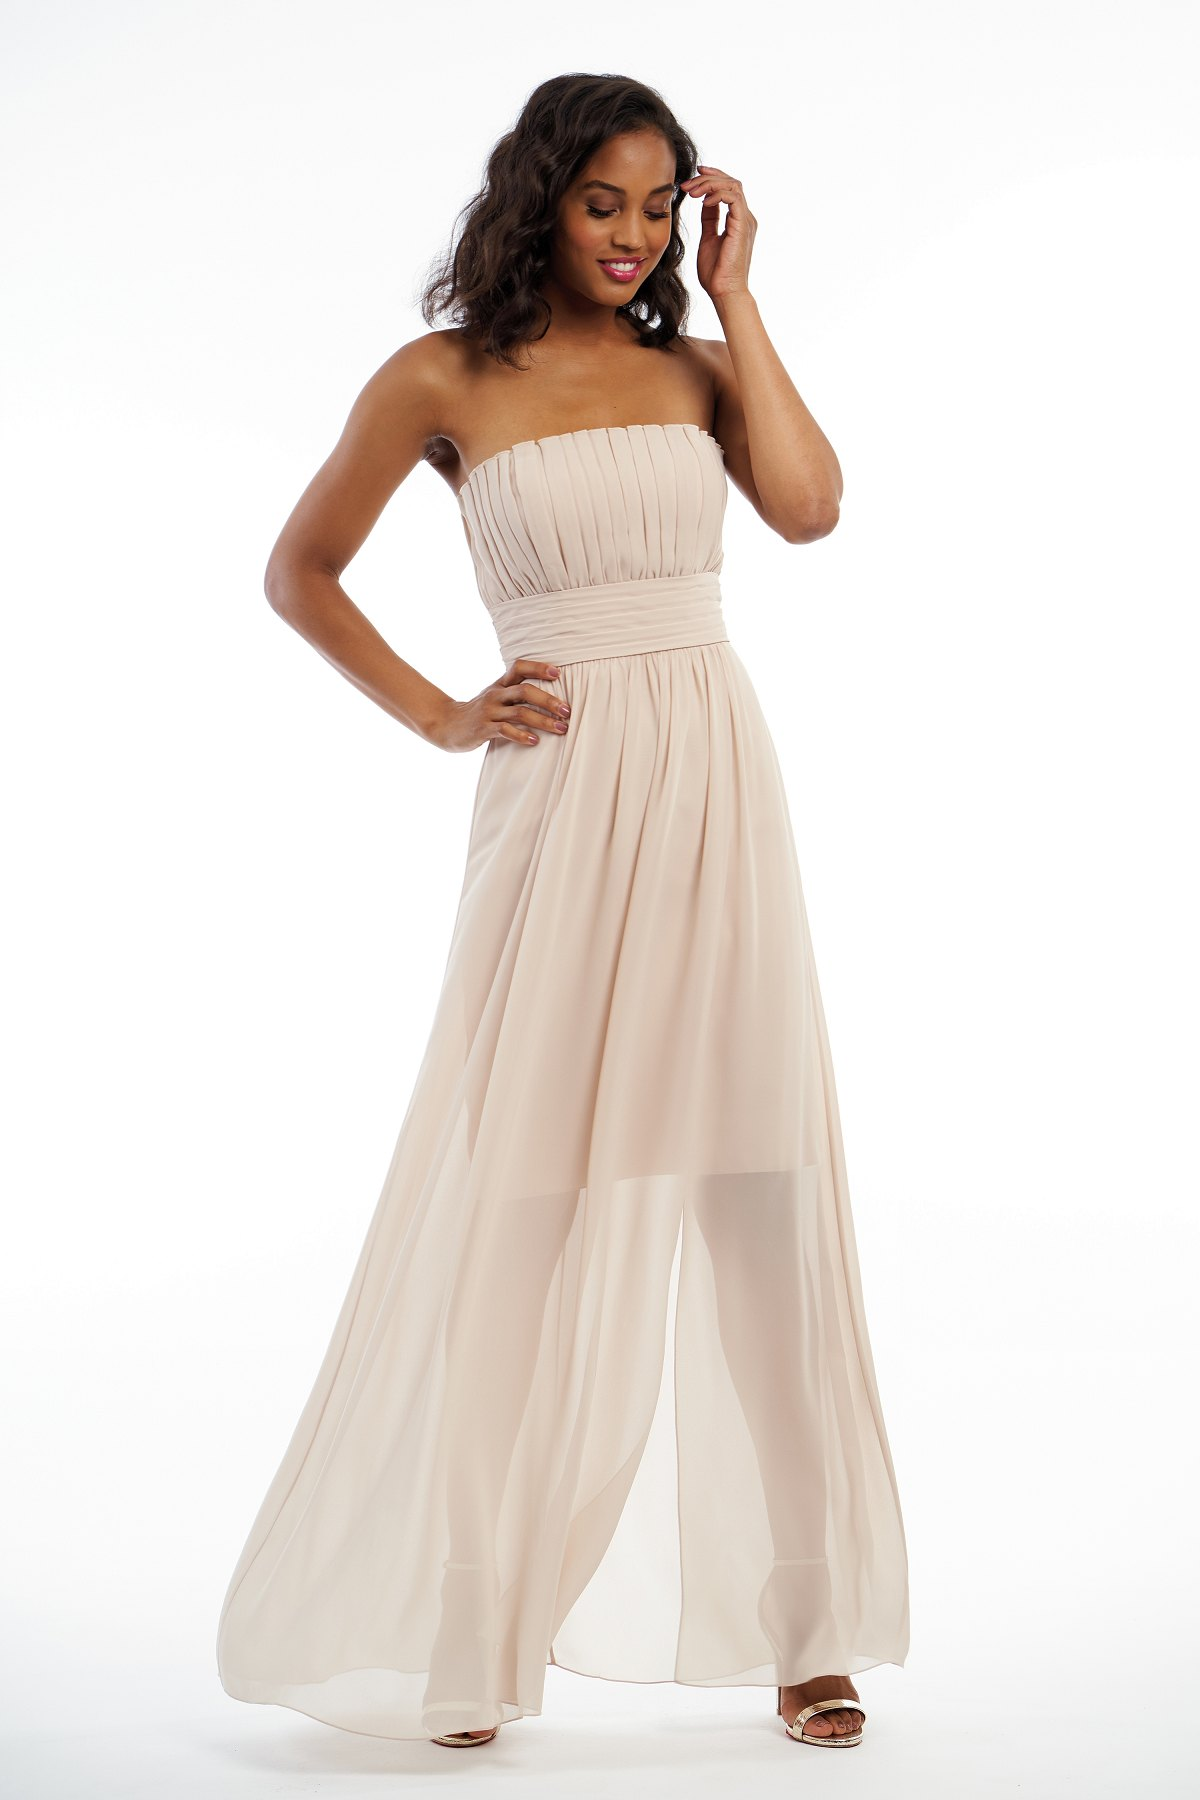 P216006 -  Pretty charlotte chiffon floor length bridesmaid dress with a strapless neckline and beautiful detailed gathers throughout the dress. A short base skirt underneath the flowy outer layer skirt to complete the look.    Available in 41 colors